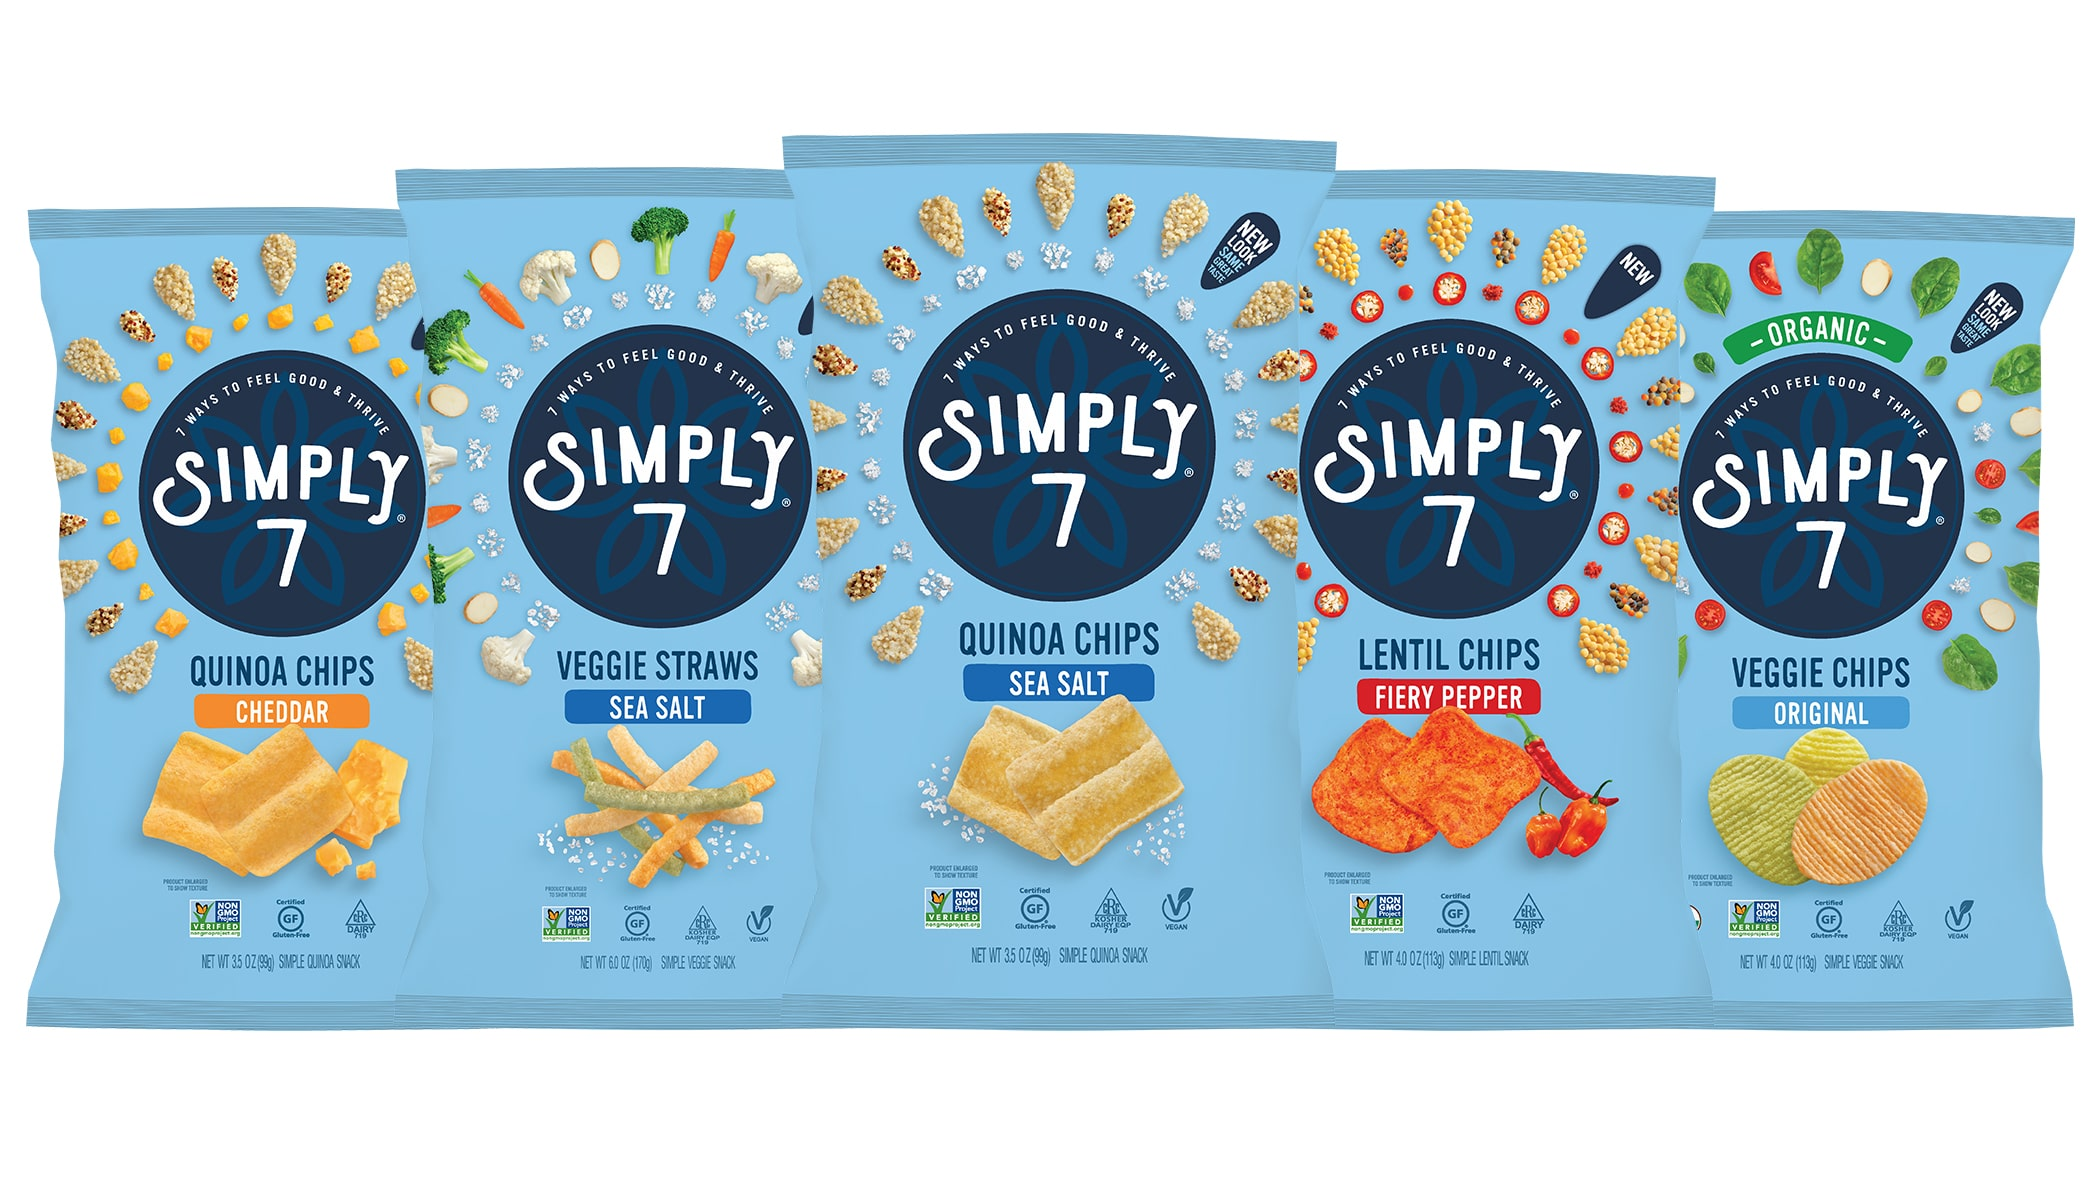 Simply 7 Introduces Two New Snacks, Launches New Branding